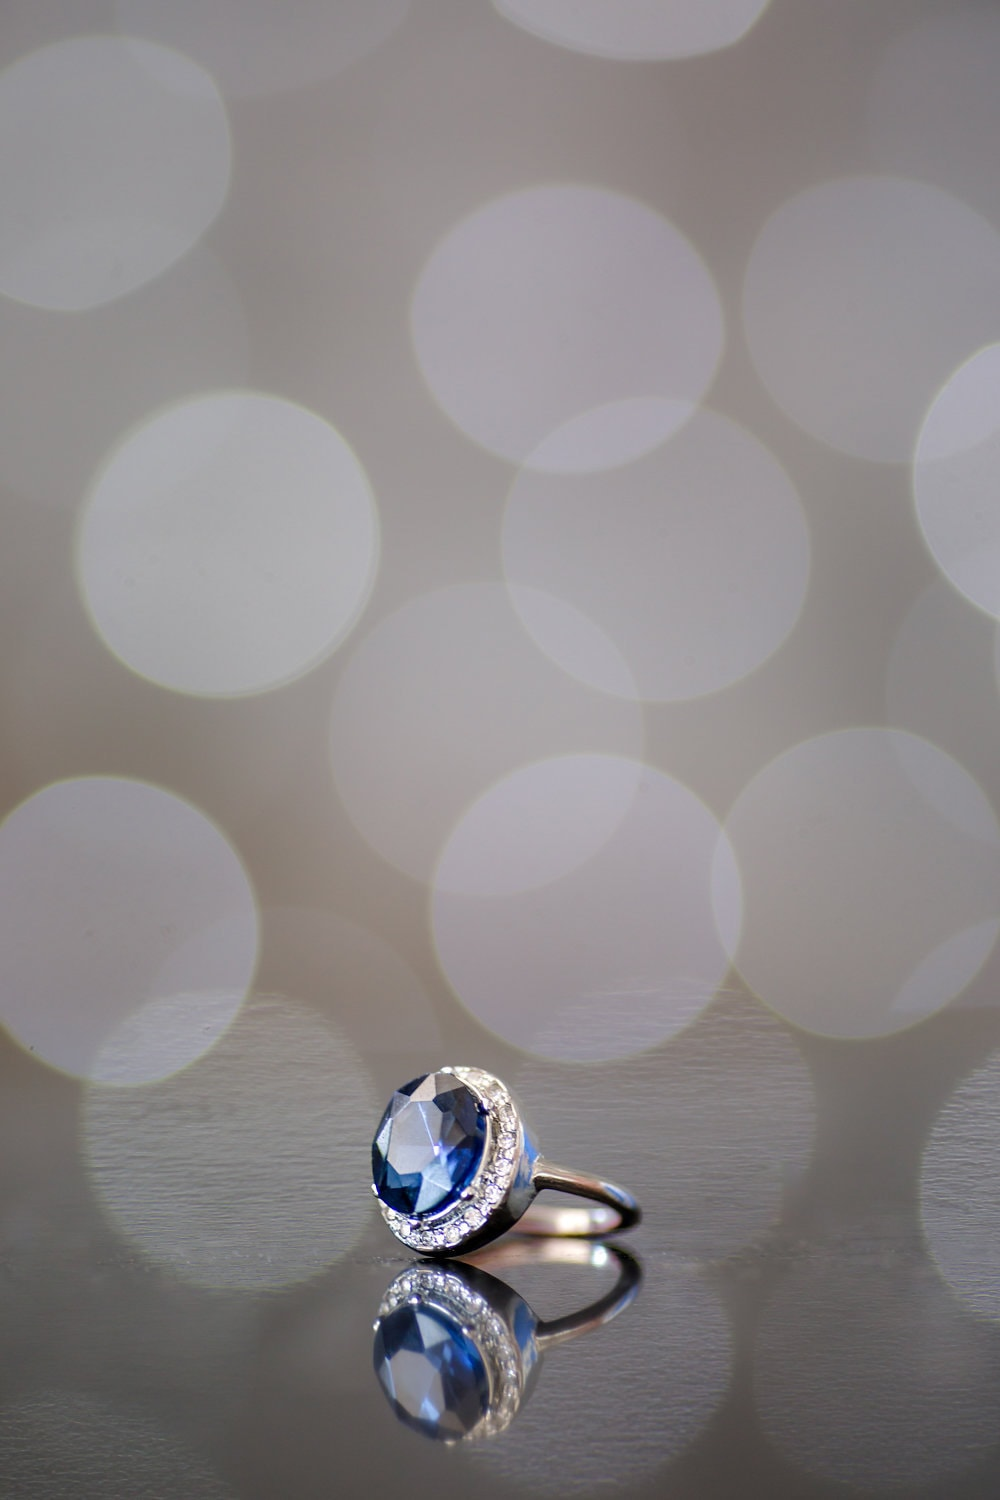 Sapphire Engagement Ring | Image: Jaqui Franco